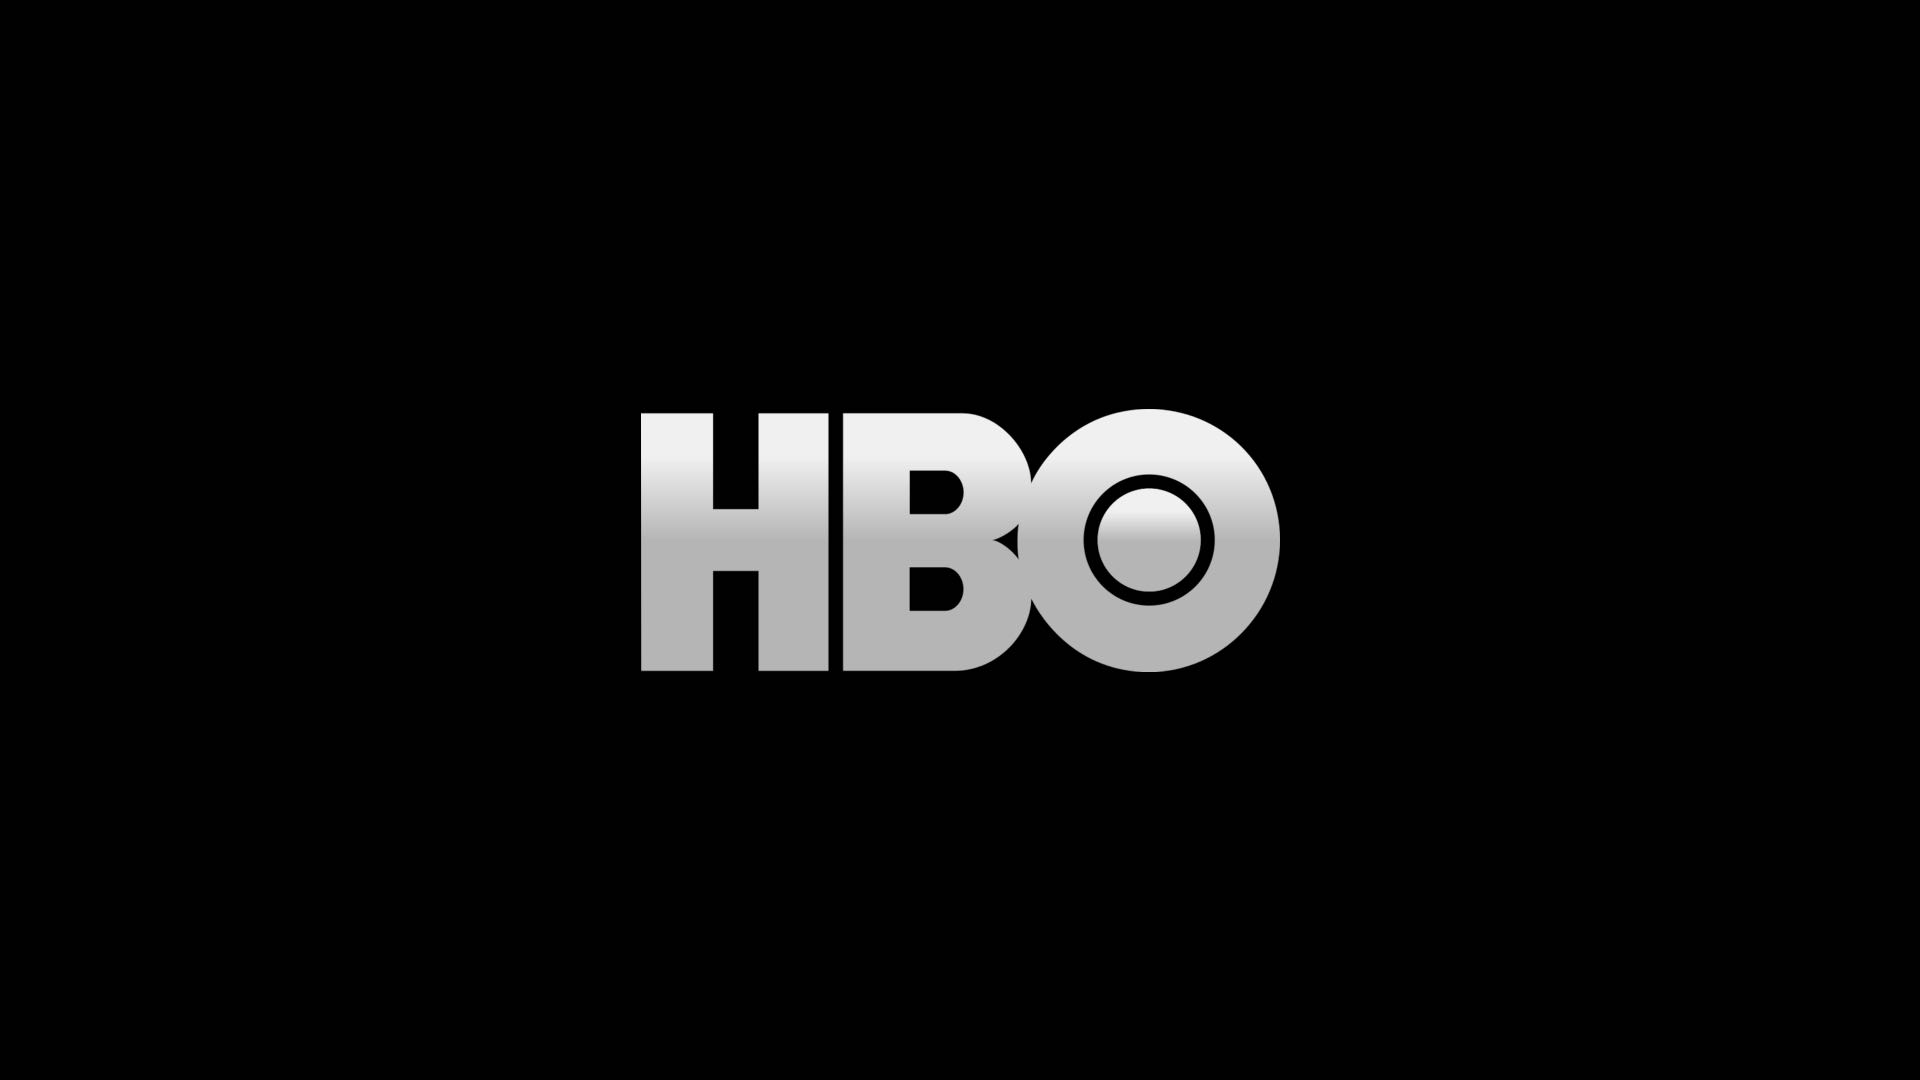 HBO.com – Redesign and UX